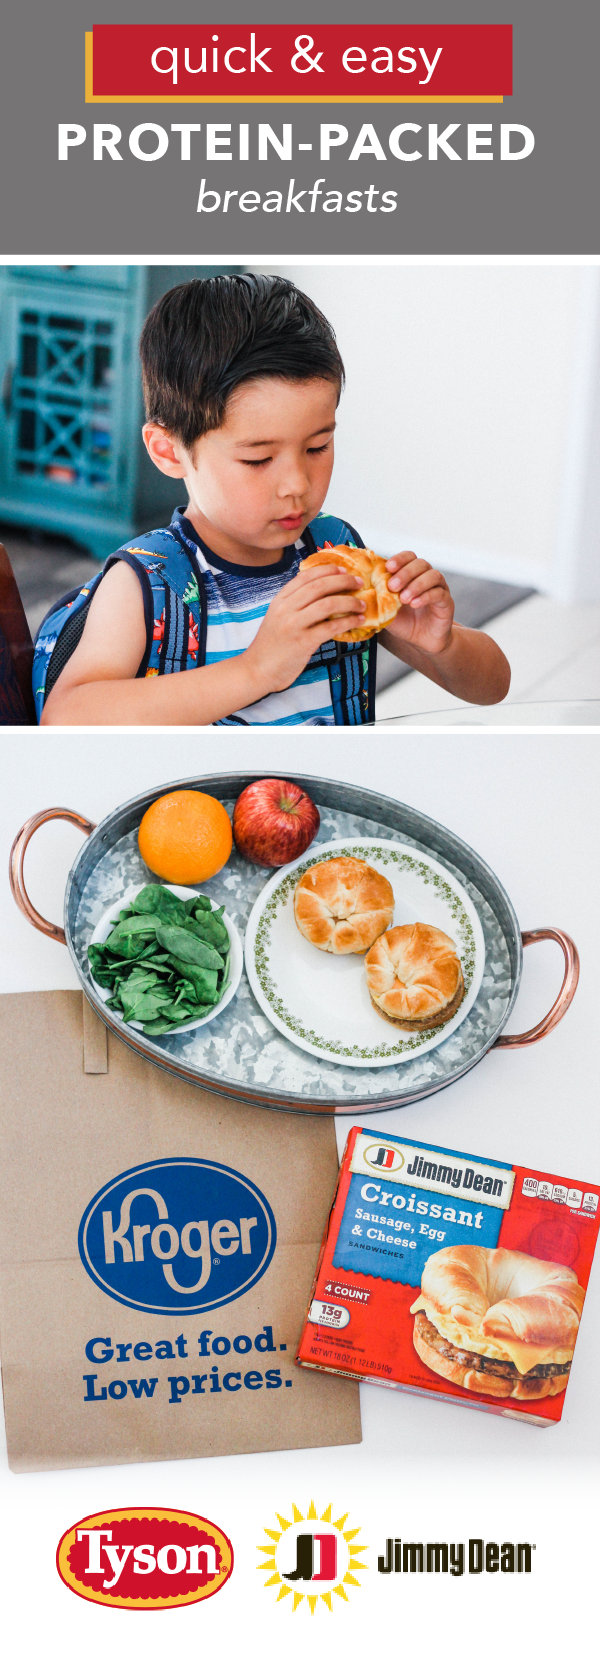 Quick & Easy ProteinPacked Breakfast Meals for the School